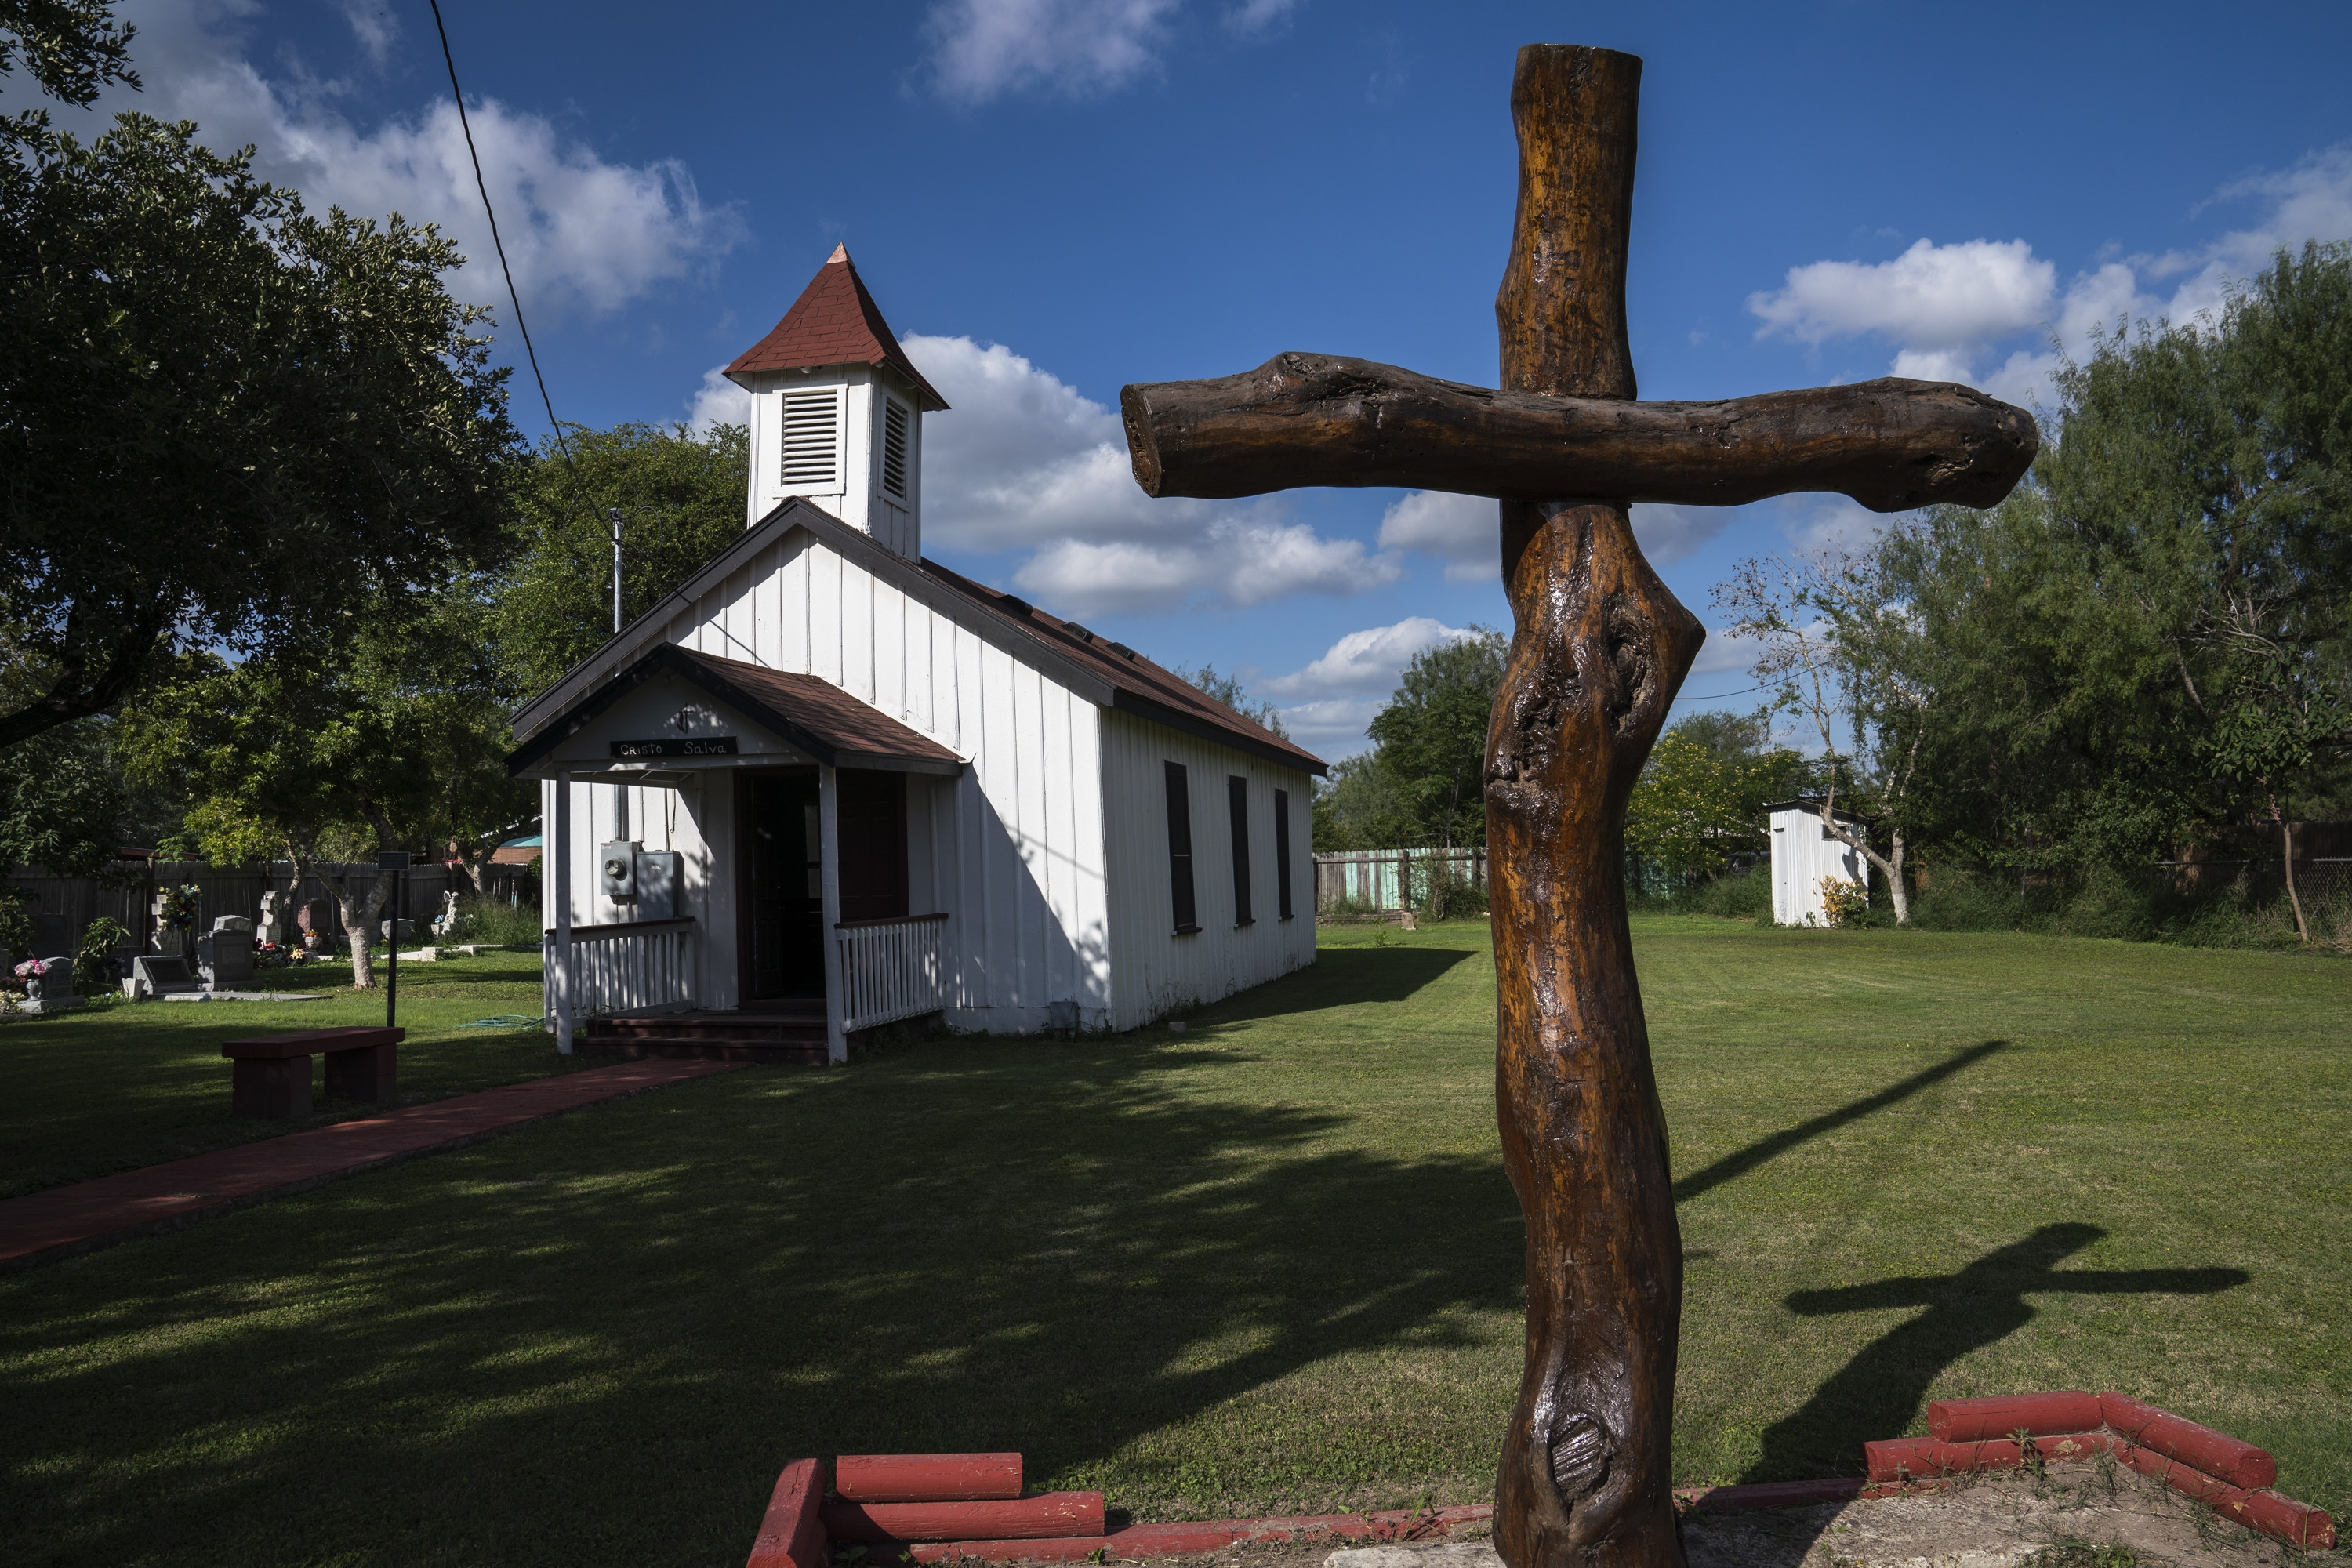 The Martin Jackson Church and Cemetery in San Juan, Tex. on Nov. 6, 2018. The new proposed wall would leave this property on the south side of it.Photo: Verónica G. Cárdenas for The Intercept